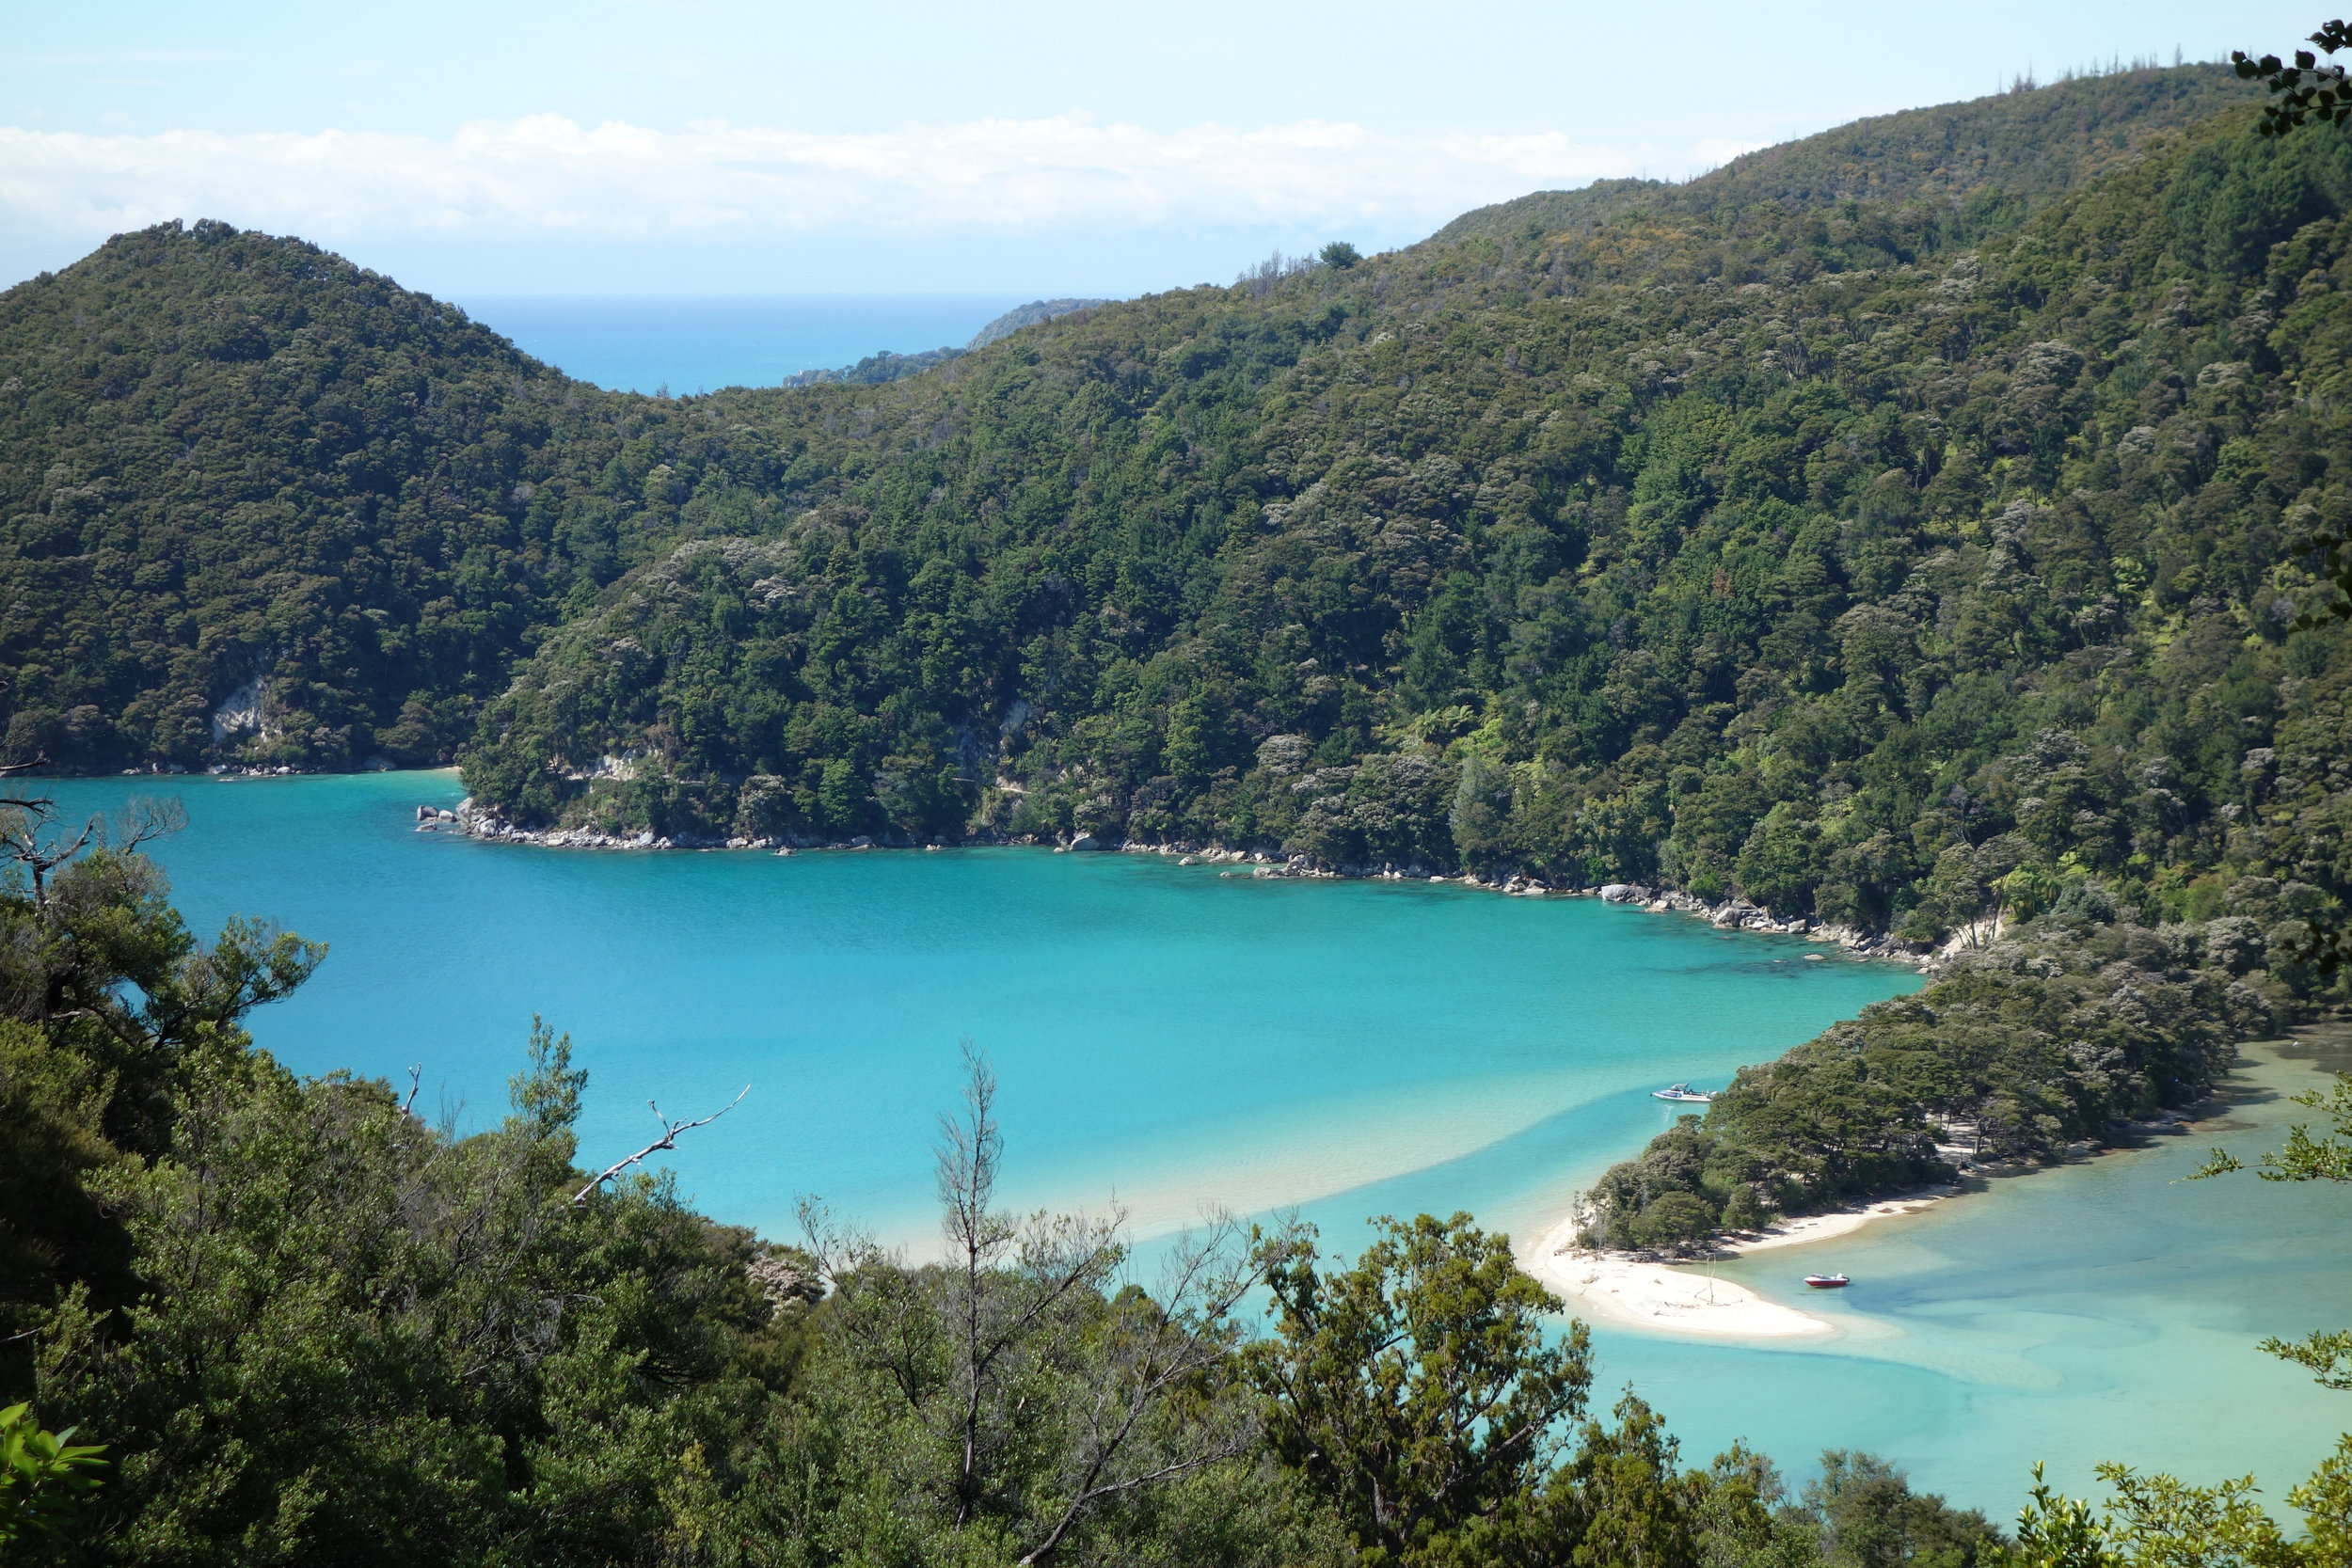 The waters of the Tasman Sea are a striking turquoise color.